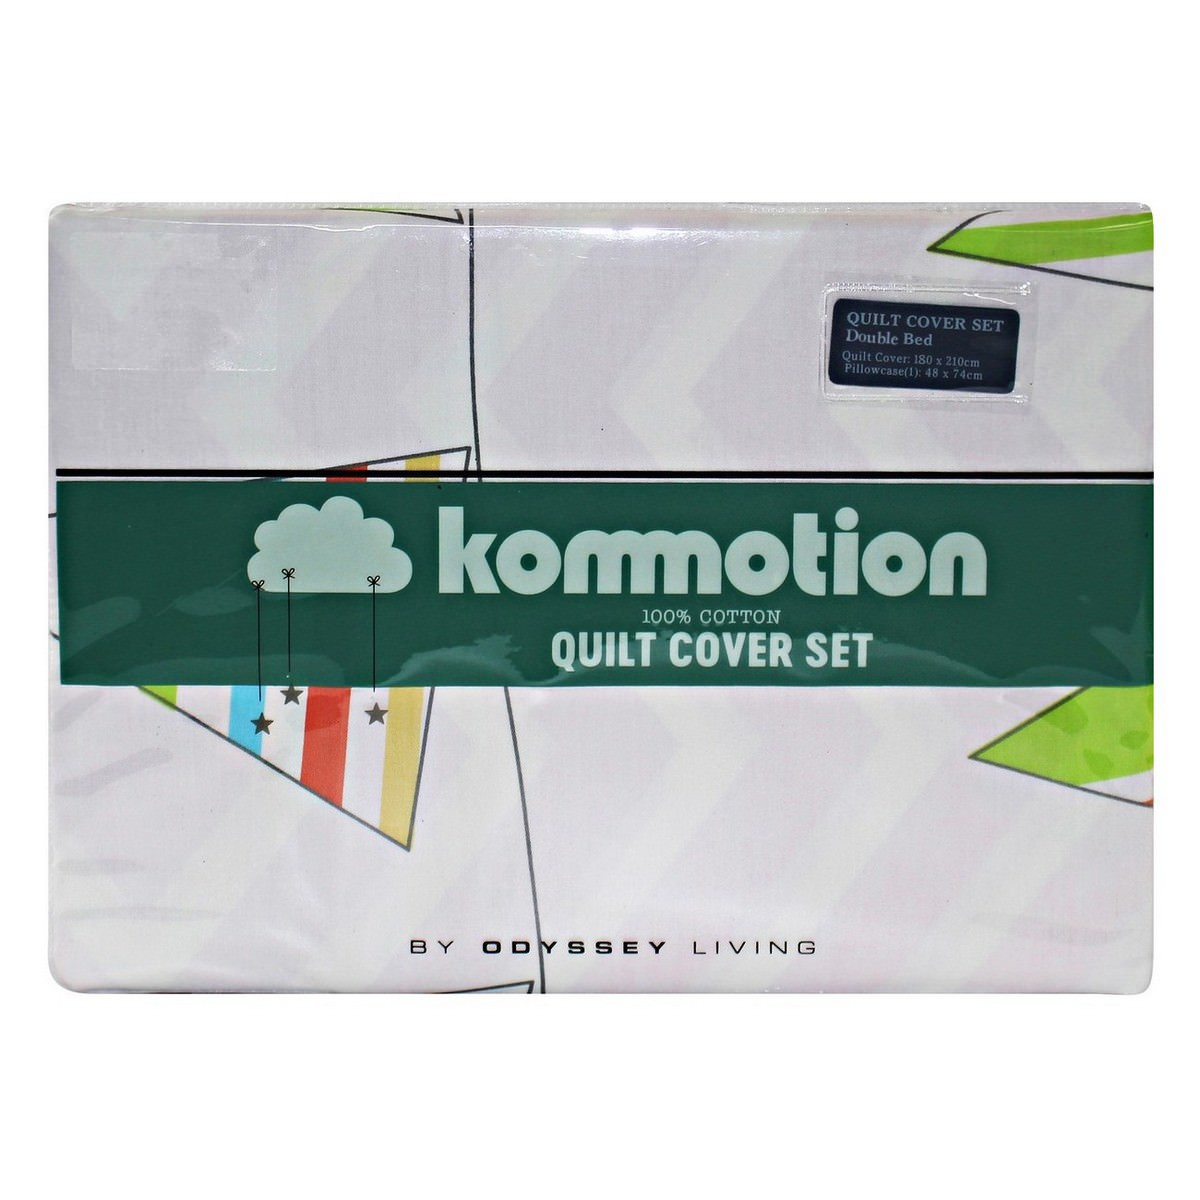 Kommotion Carnival Cotton Quilt Cover Set, Double